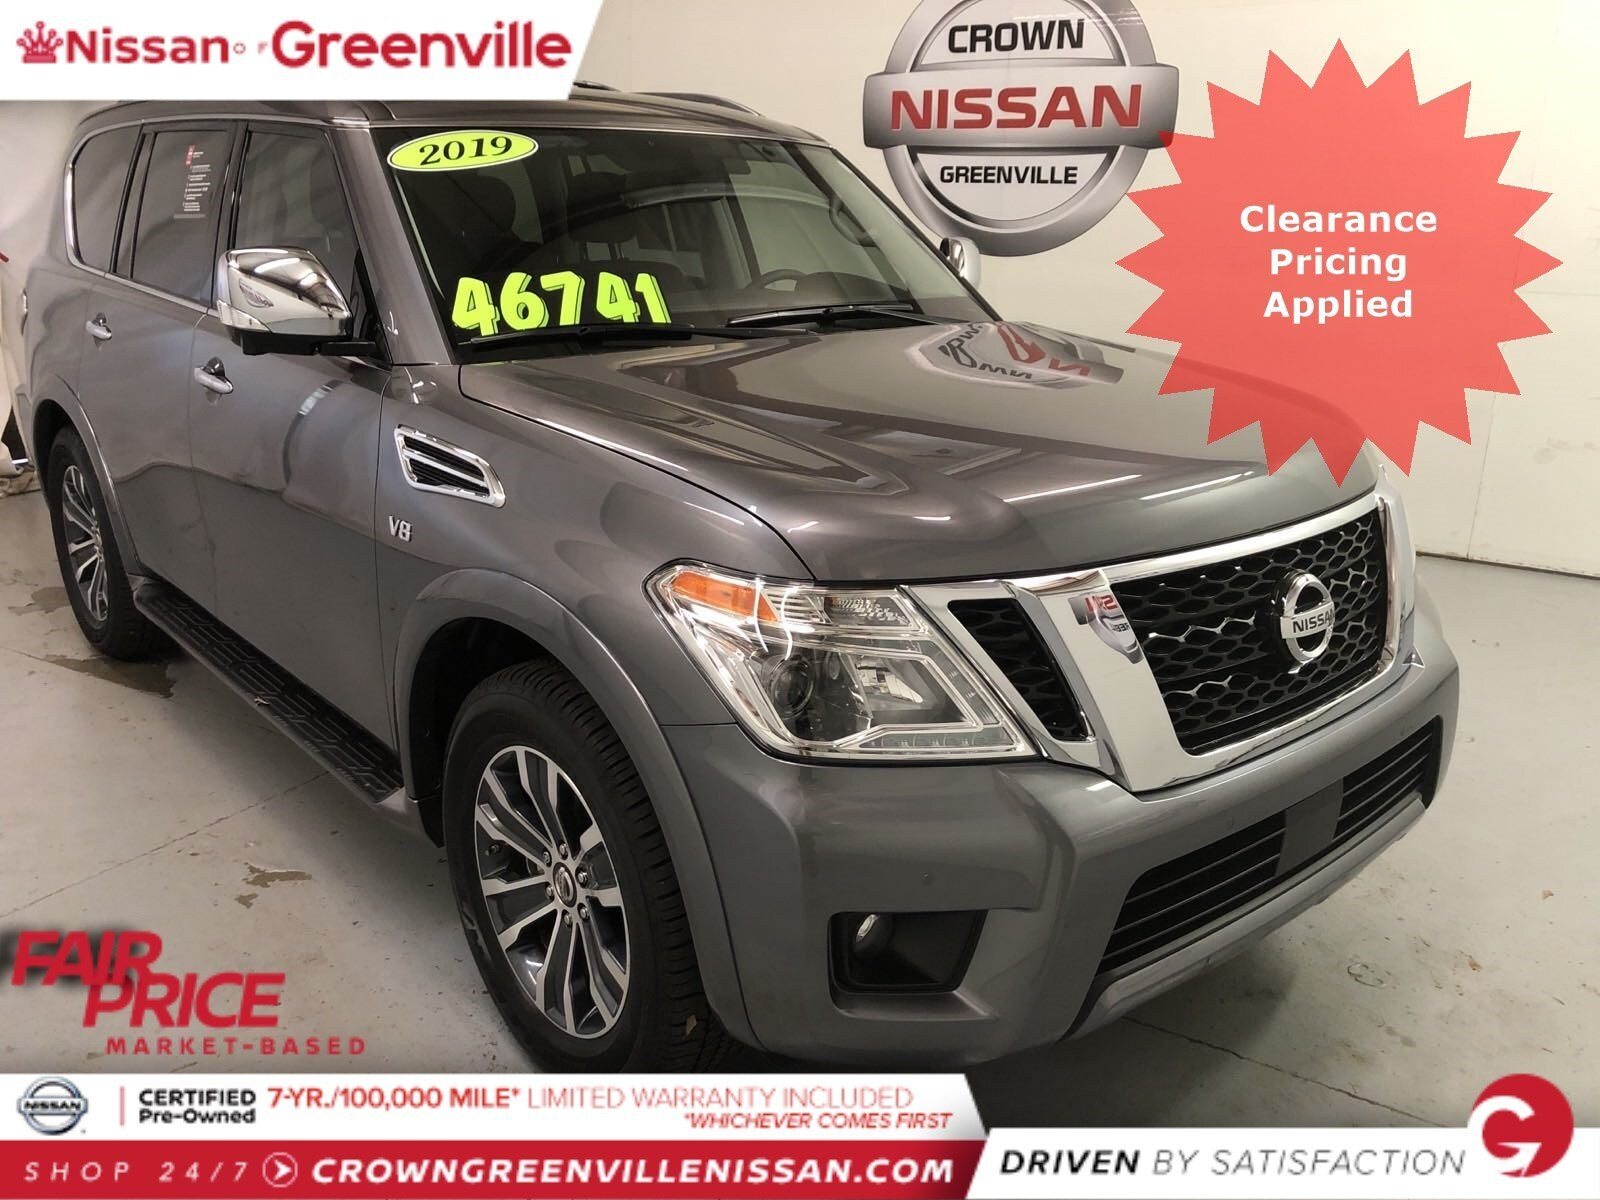 Used Cars Greenville Sc >> Used Car Specials In Greenville Used Car Deals Nissan Greenville